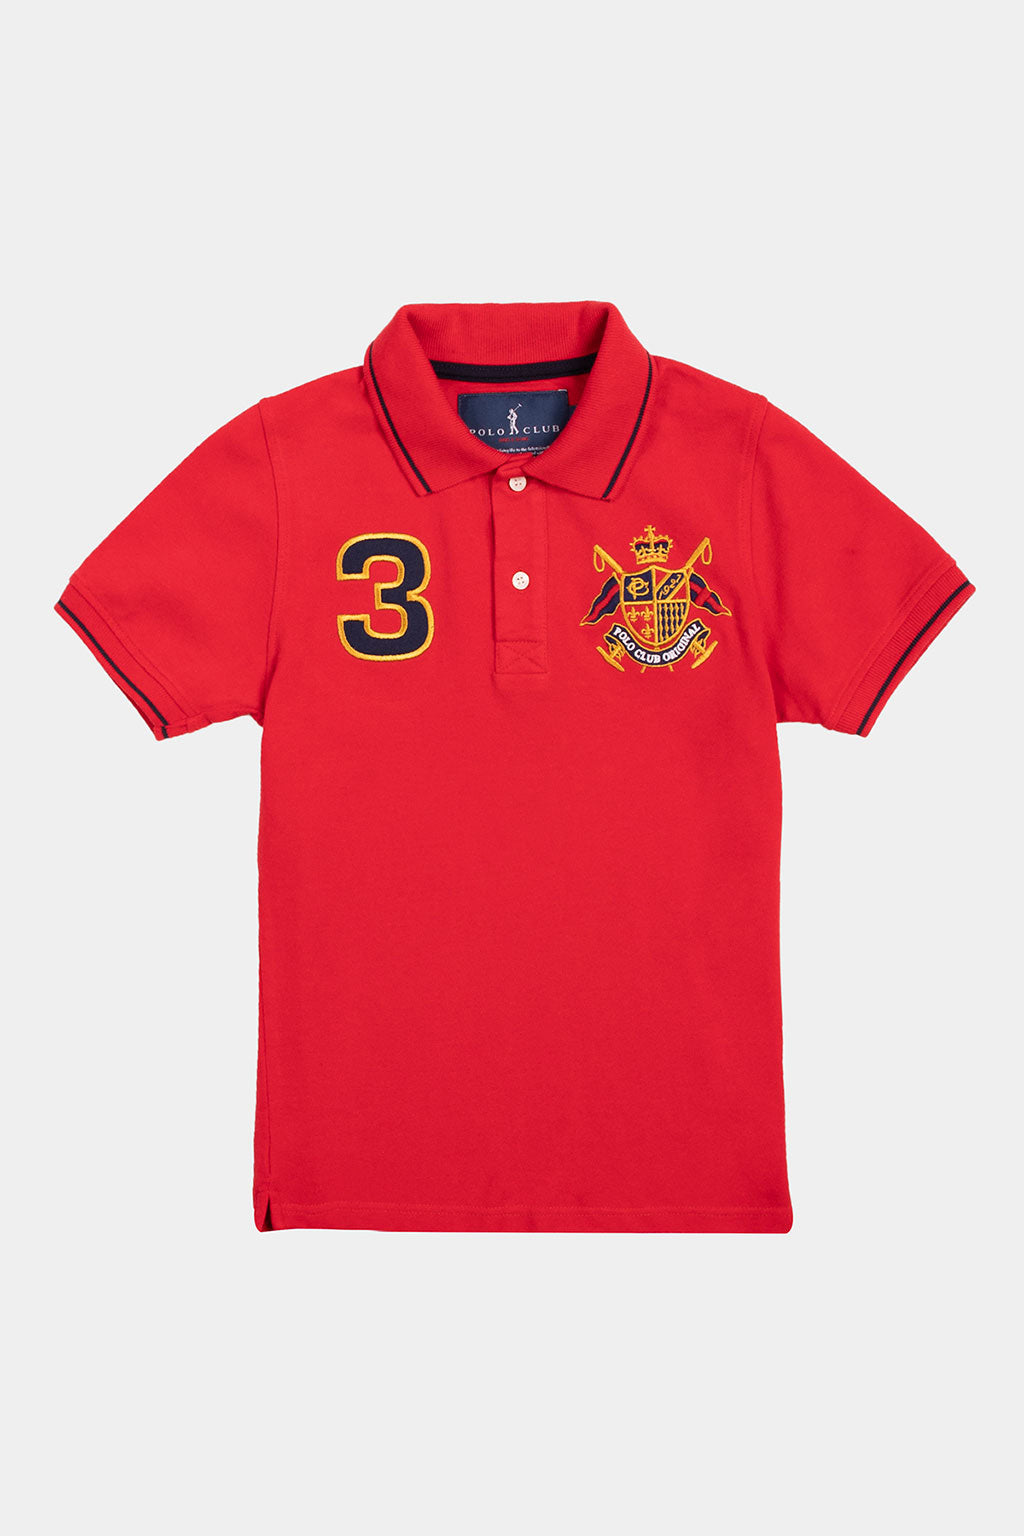 Nautical-inspired red polo shirt